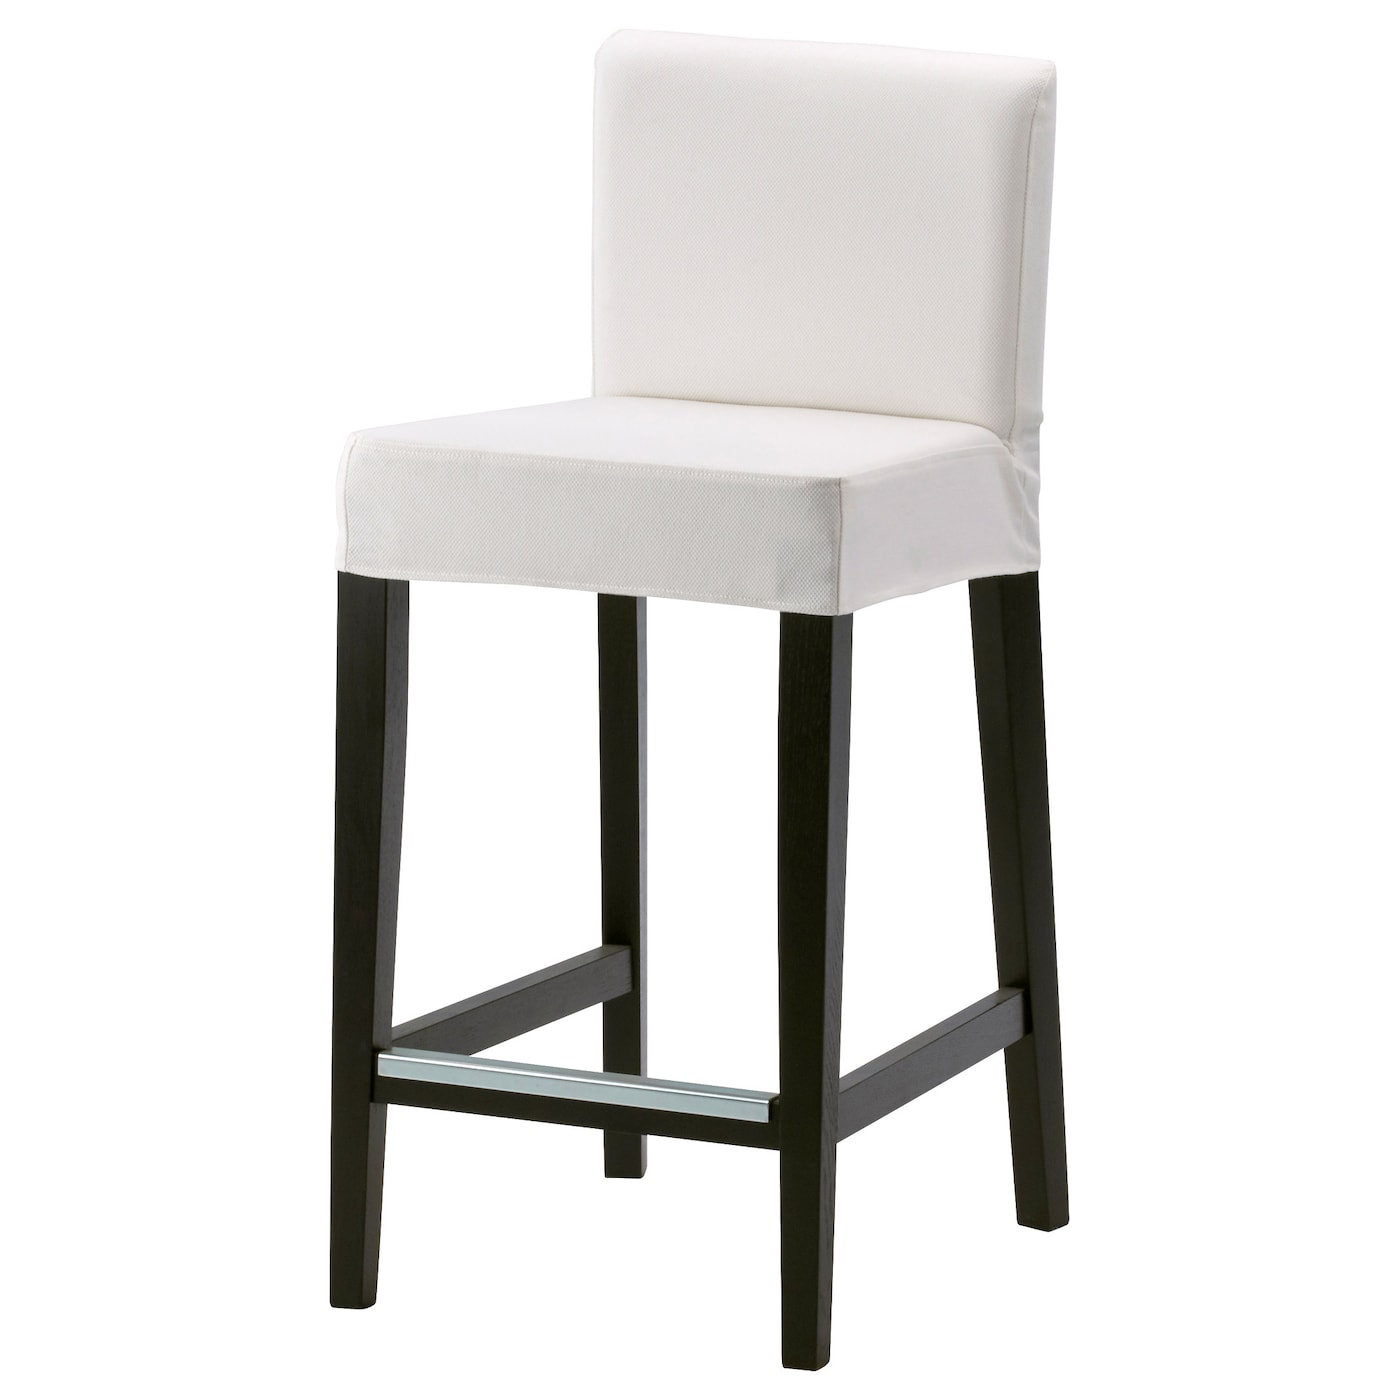 henriksdal tabouret de bar dossier brun noir gr sbo blanc 63 cm ikea. Black Bedroom Furniture Sets. Home Design Ideas